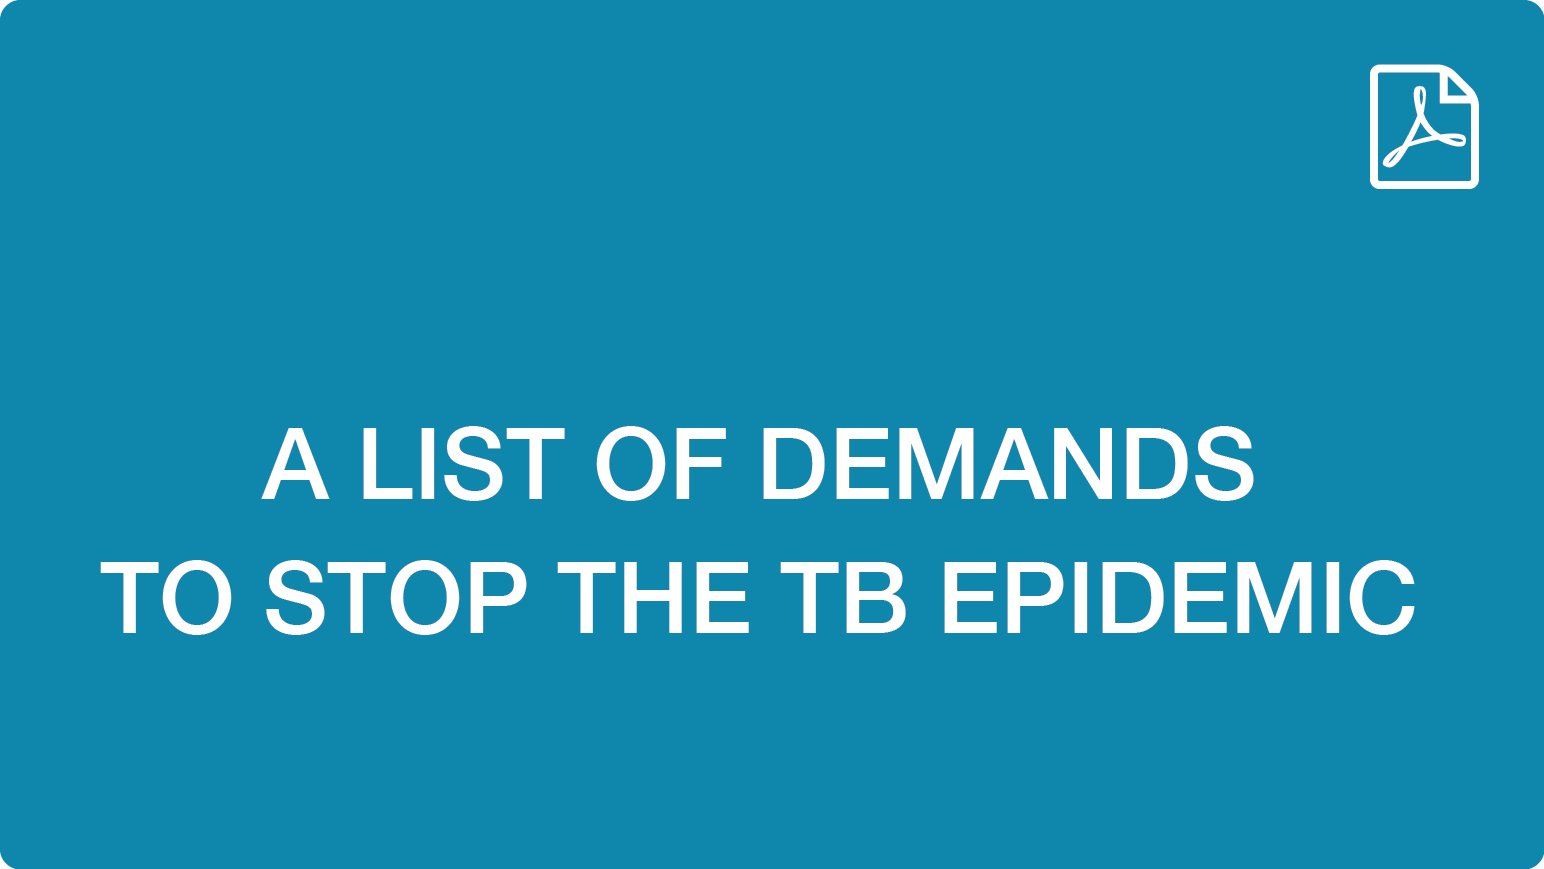 A List of Demands TO STOP THE TB EPIDEMIC